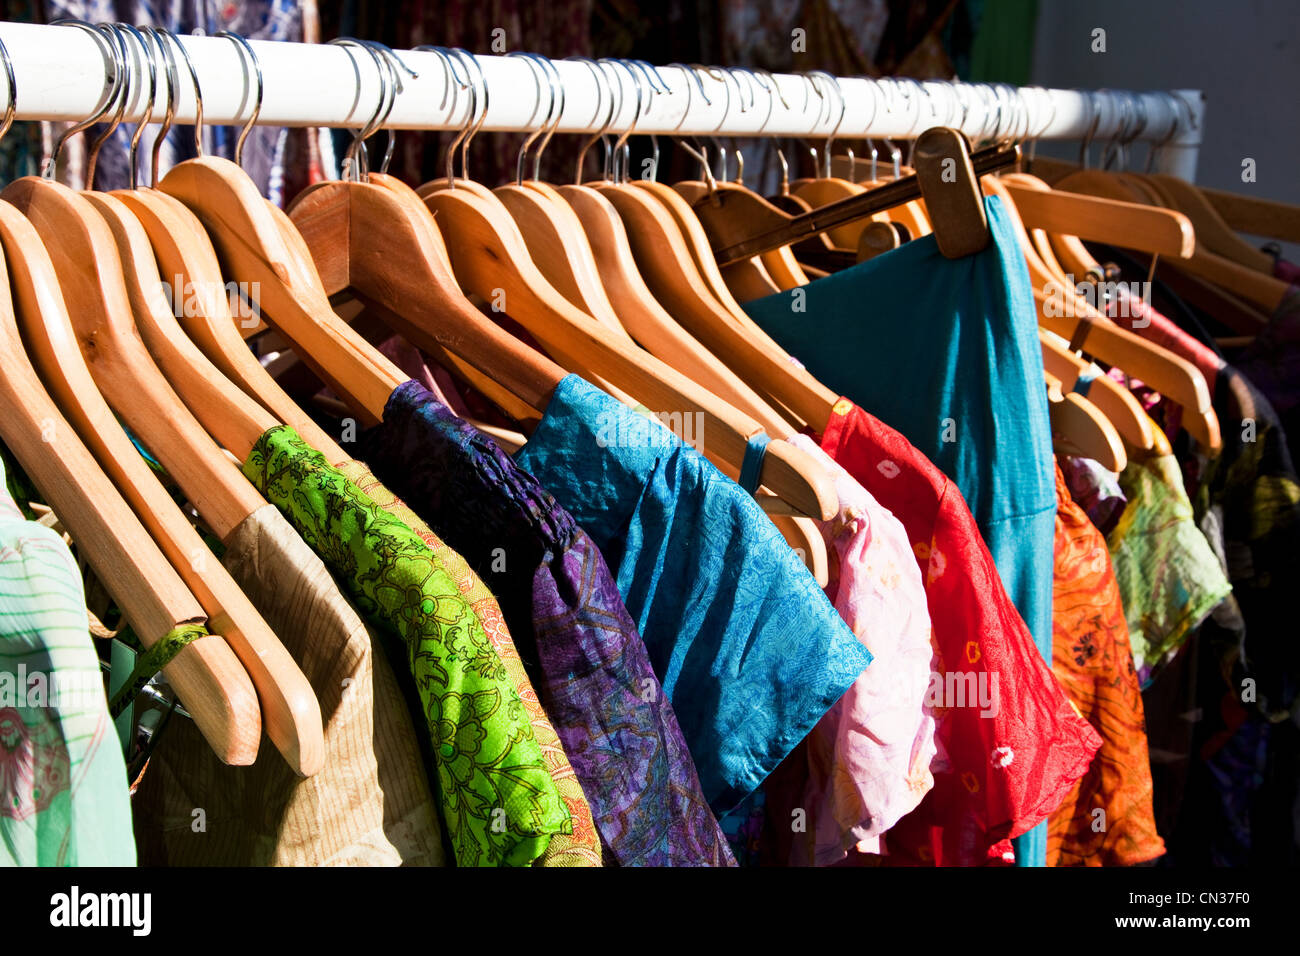 Clothing hanging on clothes rail - Stock Image